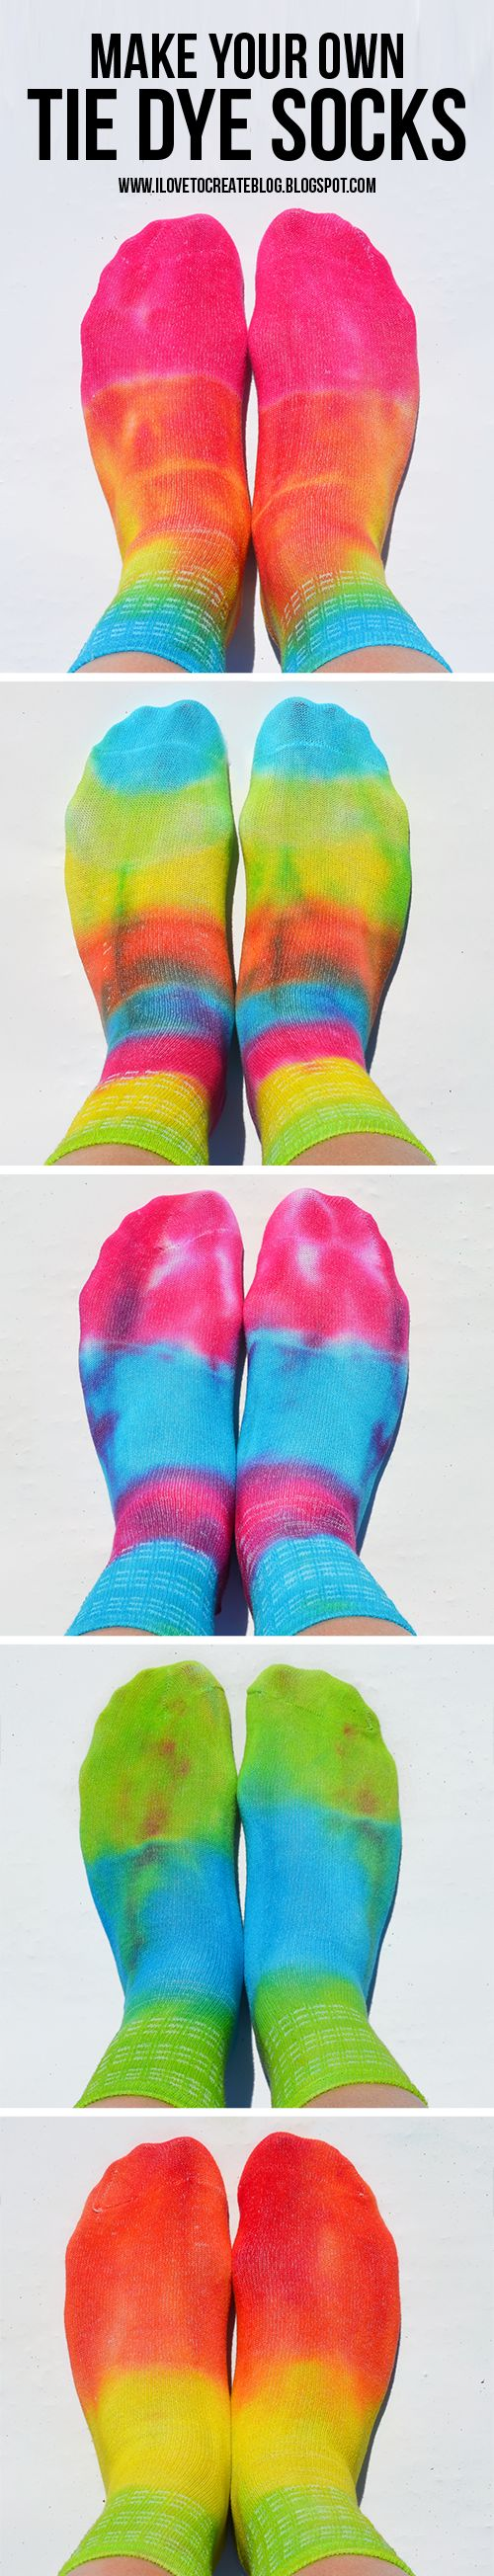 Learn how to make your own tie dye socks! So easy and fun!!!